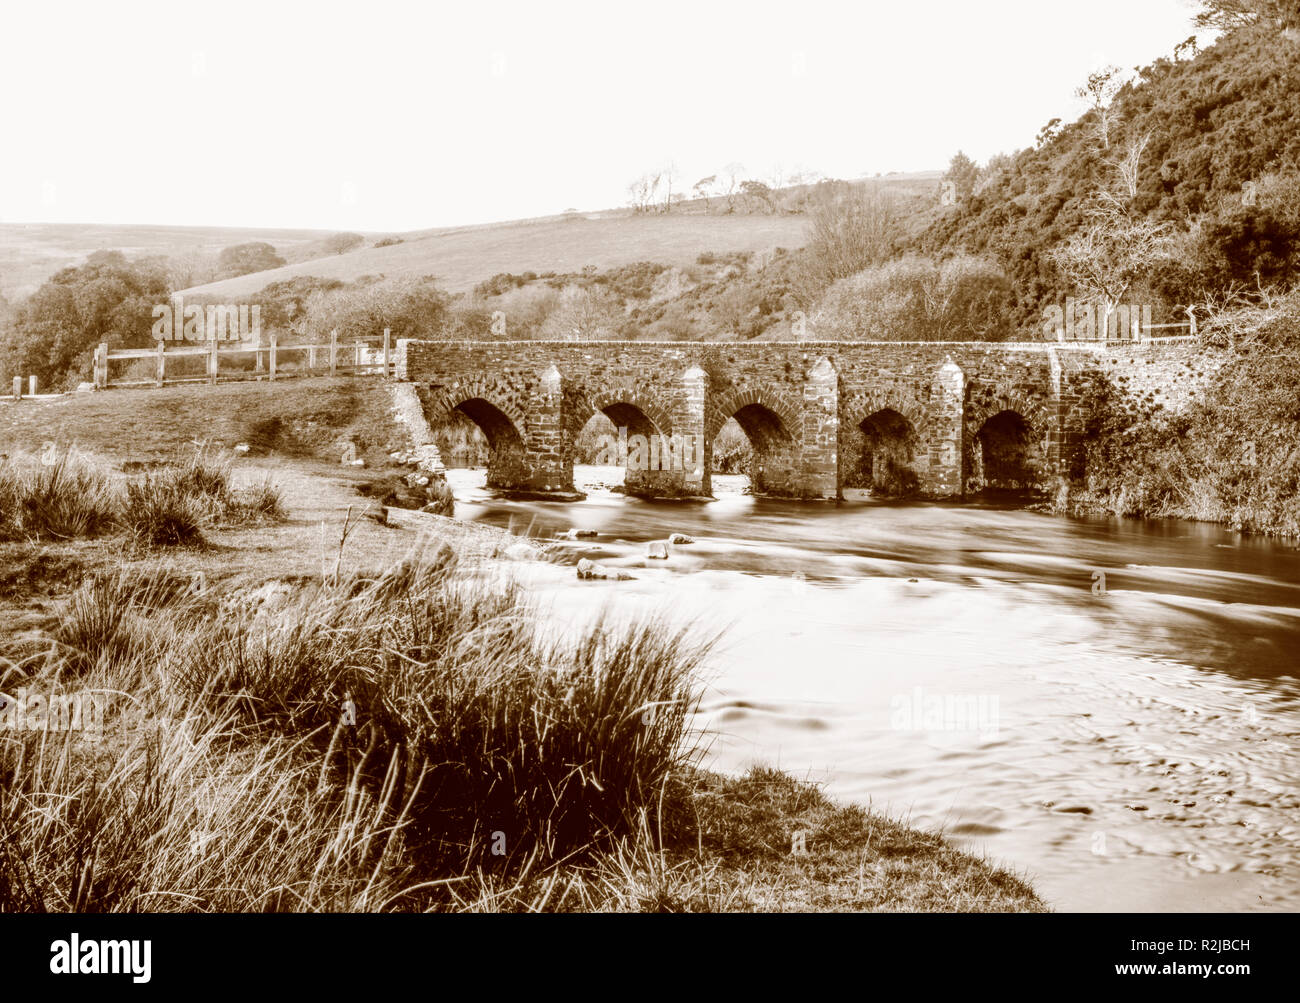 A sepia toned photograph taken on a paper negative in a 7 x 5 inch plate camera in October 2018 of Landacre Bridge over the River Barle on Exmoor - Stock Image